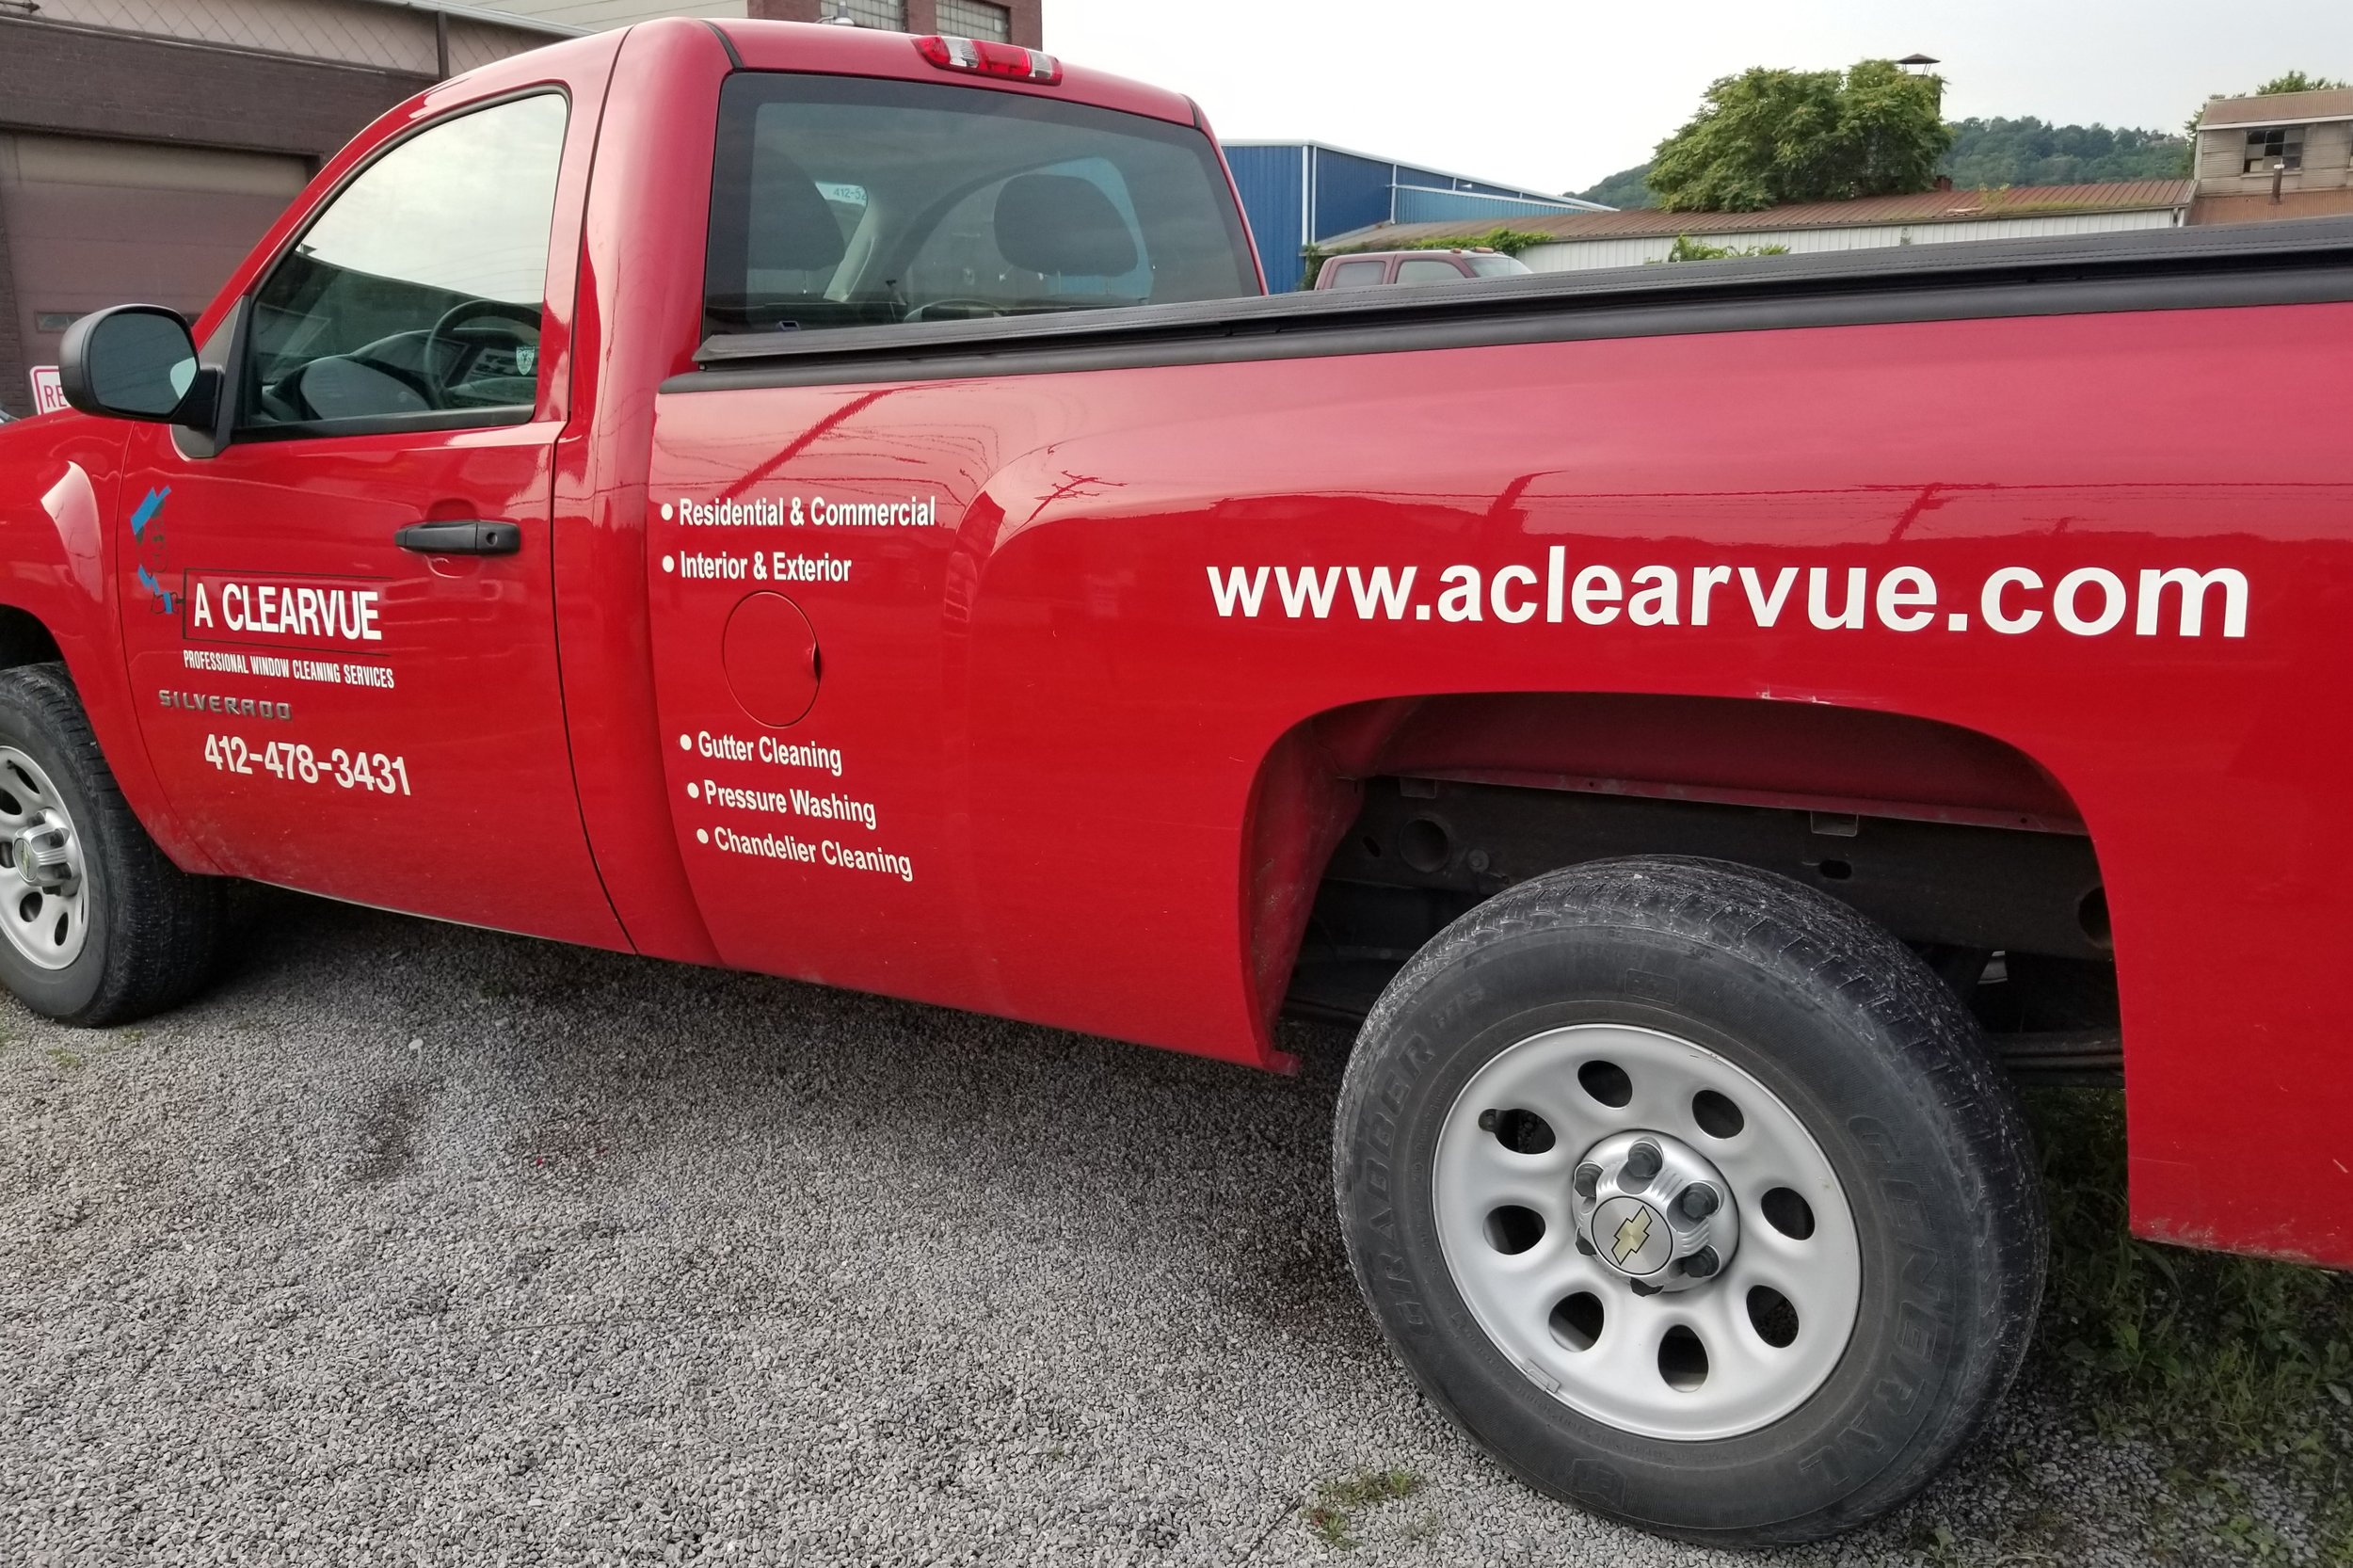 A Clearvue Window Cleaning - 853 4th Ave,(412) 478-3431